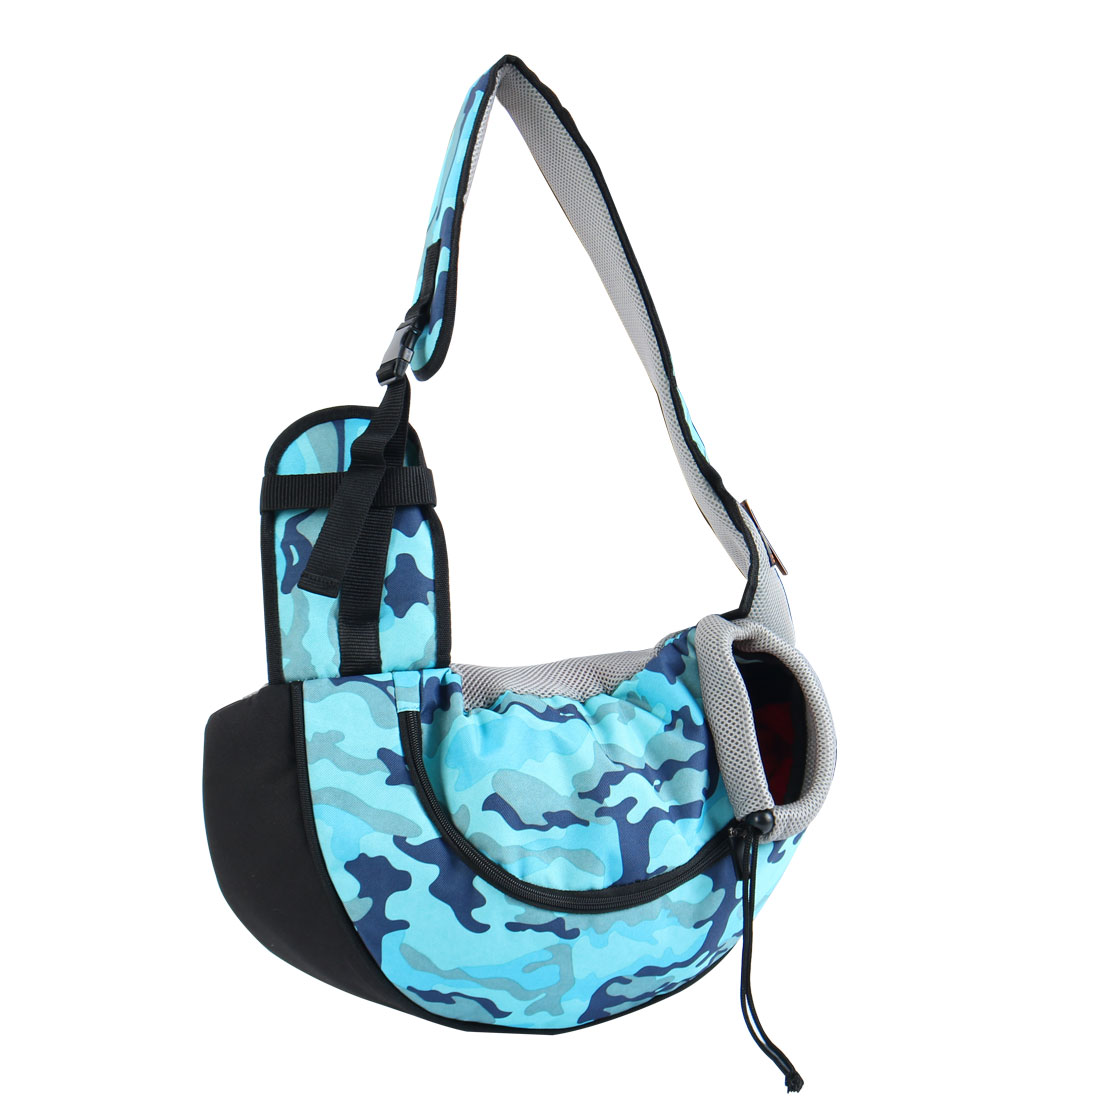 Onding Authorized Pet Dog Carrier Single Shoulder Backpack Blue Camo